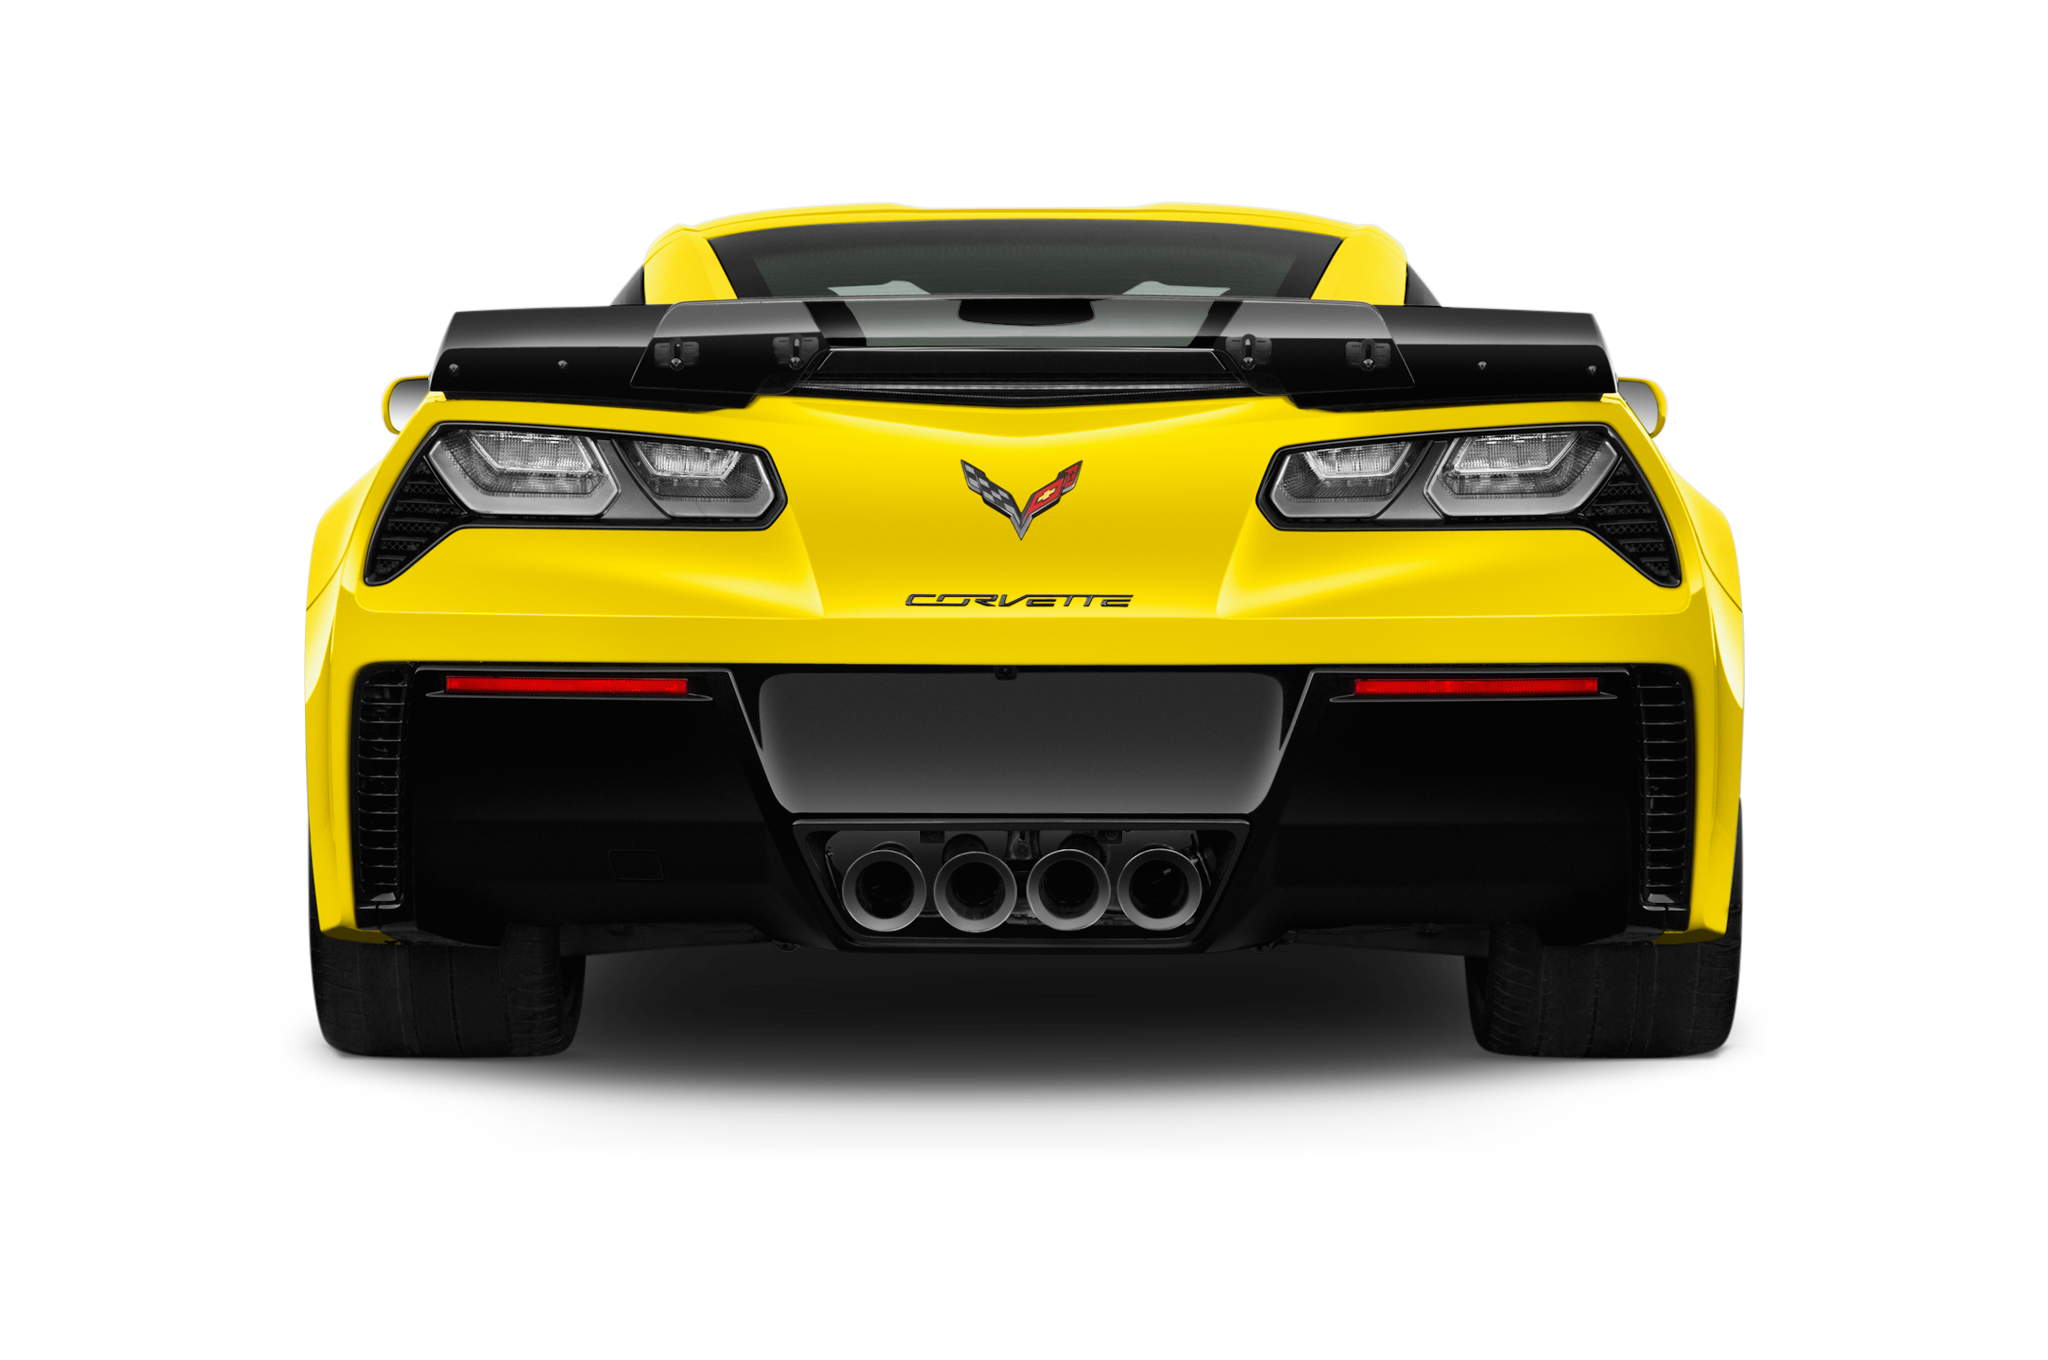 Side drawing corvette. Collection of free corvet